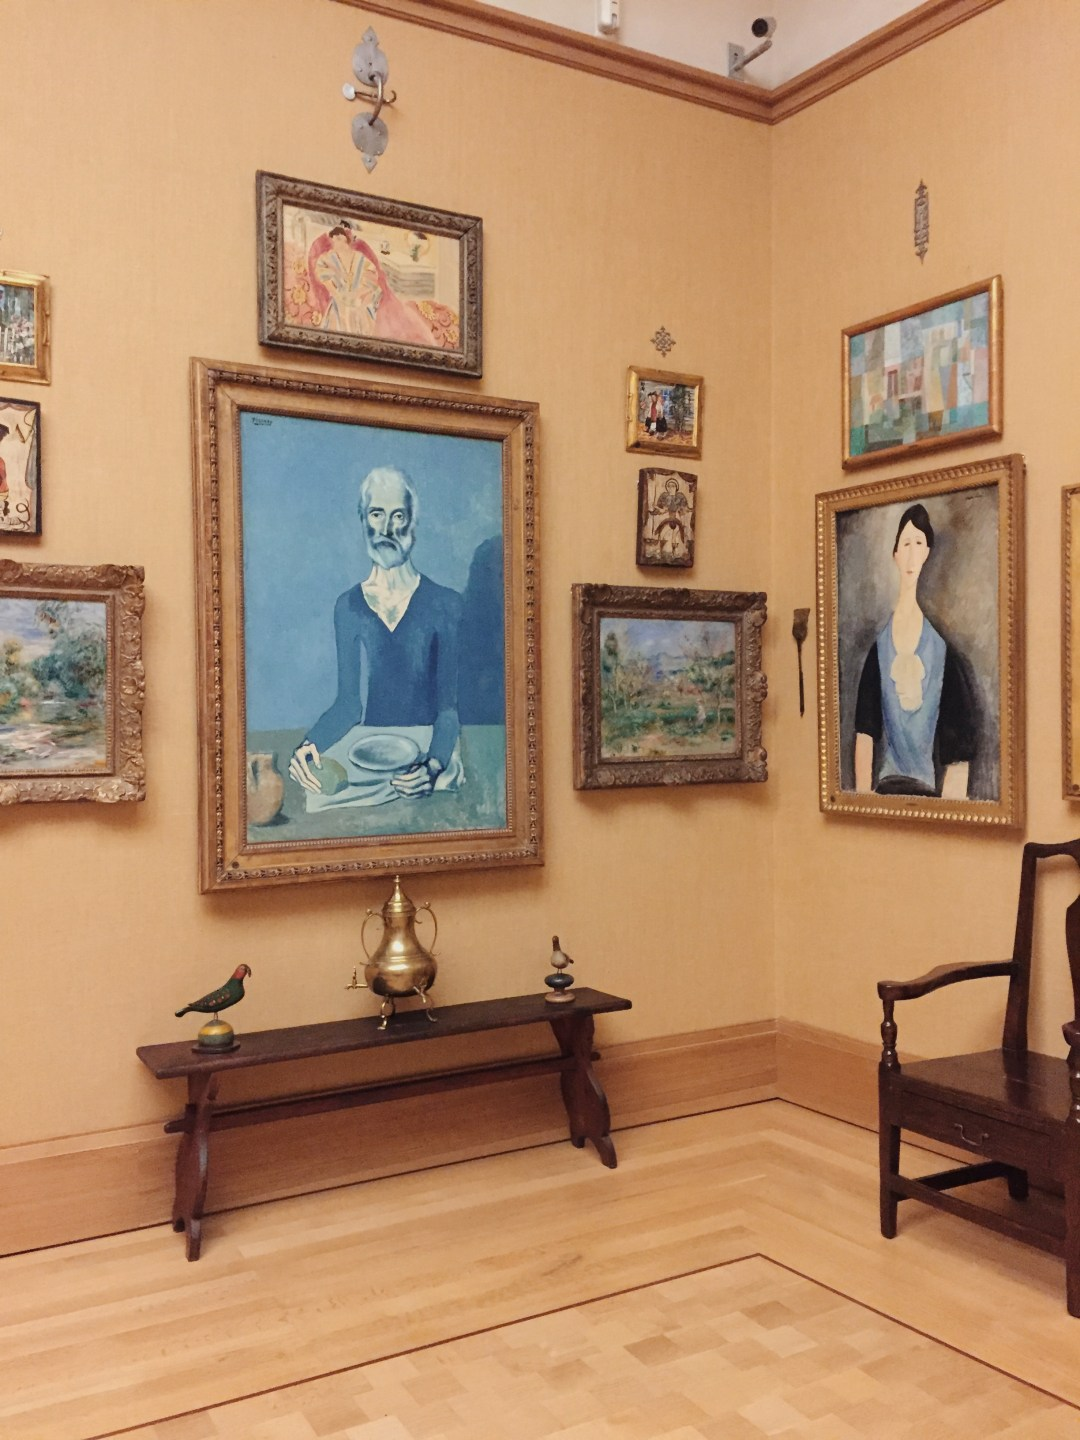 picasso, barnes foundation museum - december lately | brunch at audrey's